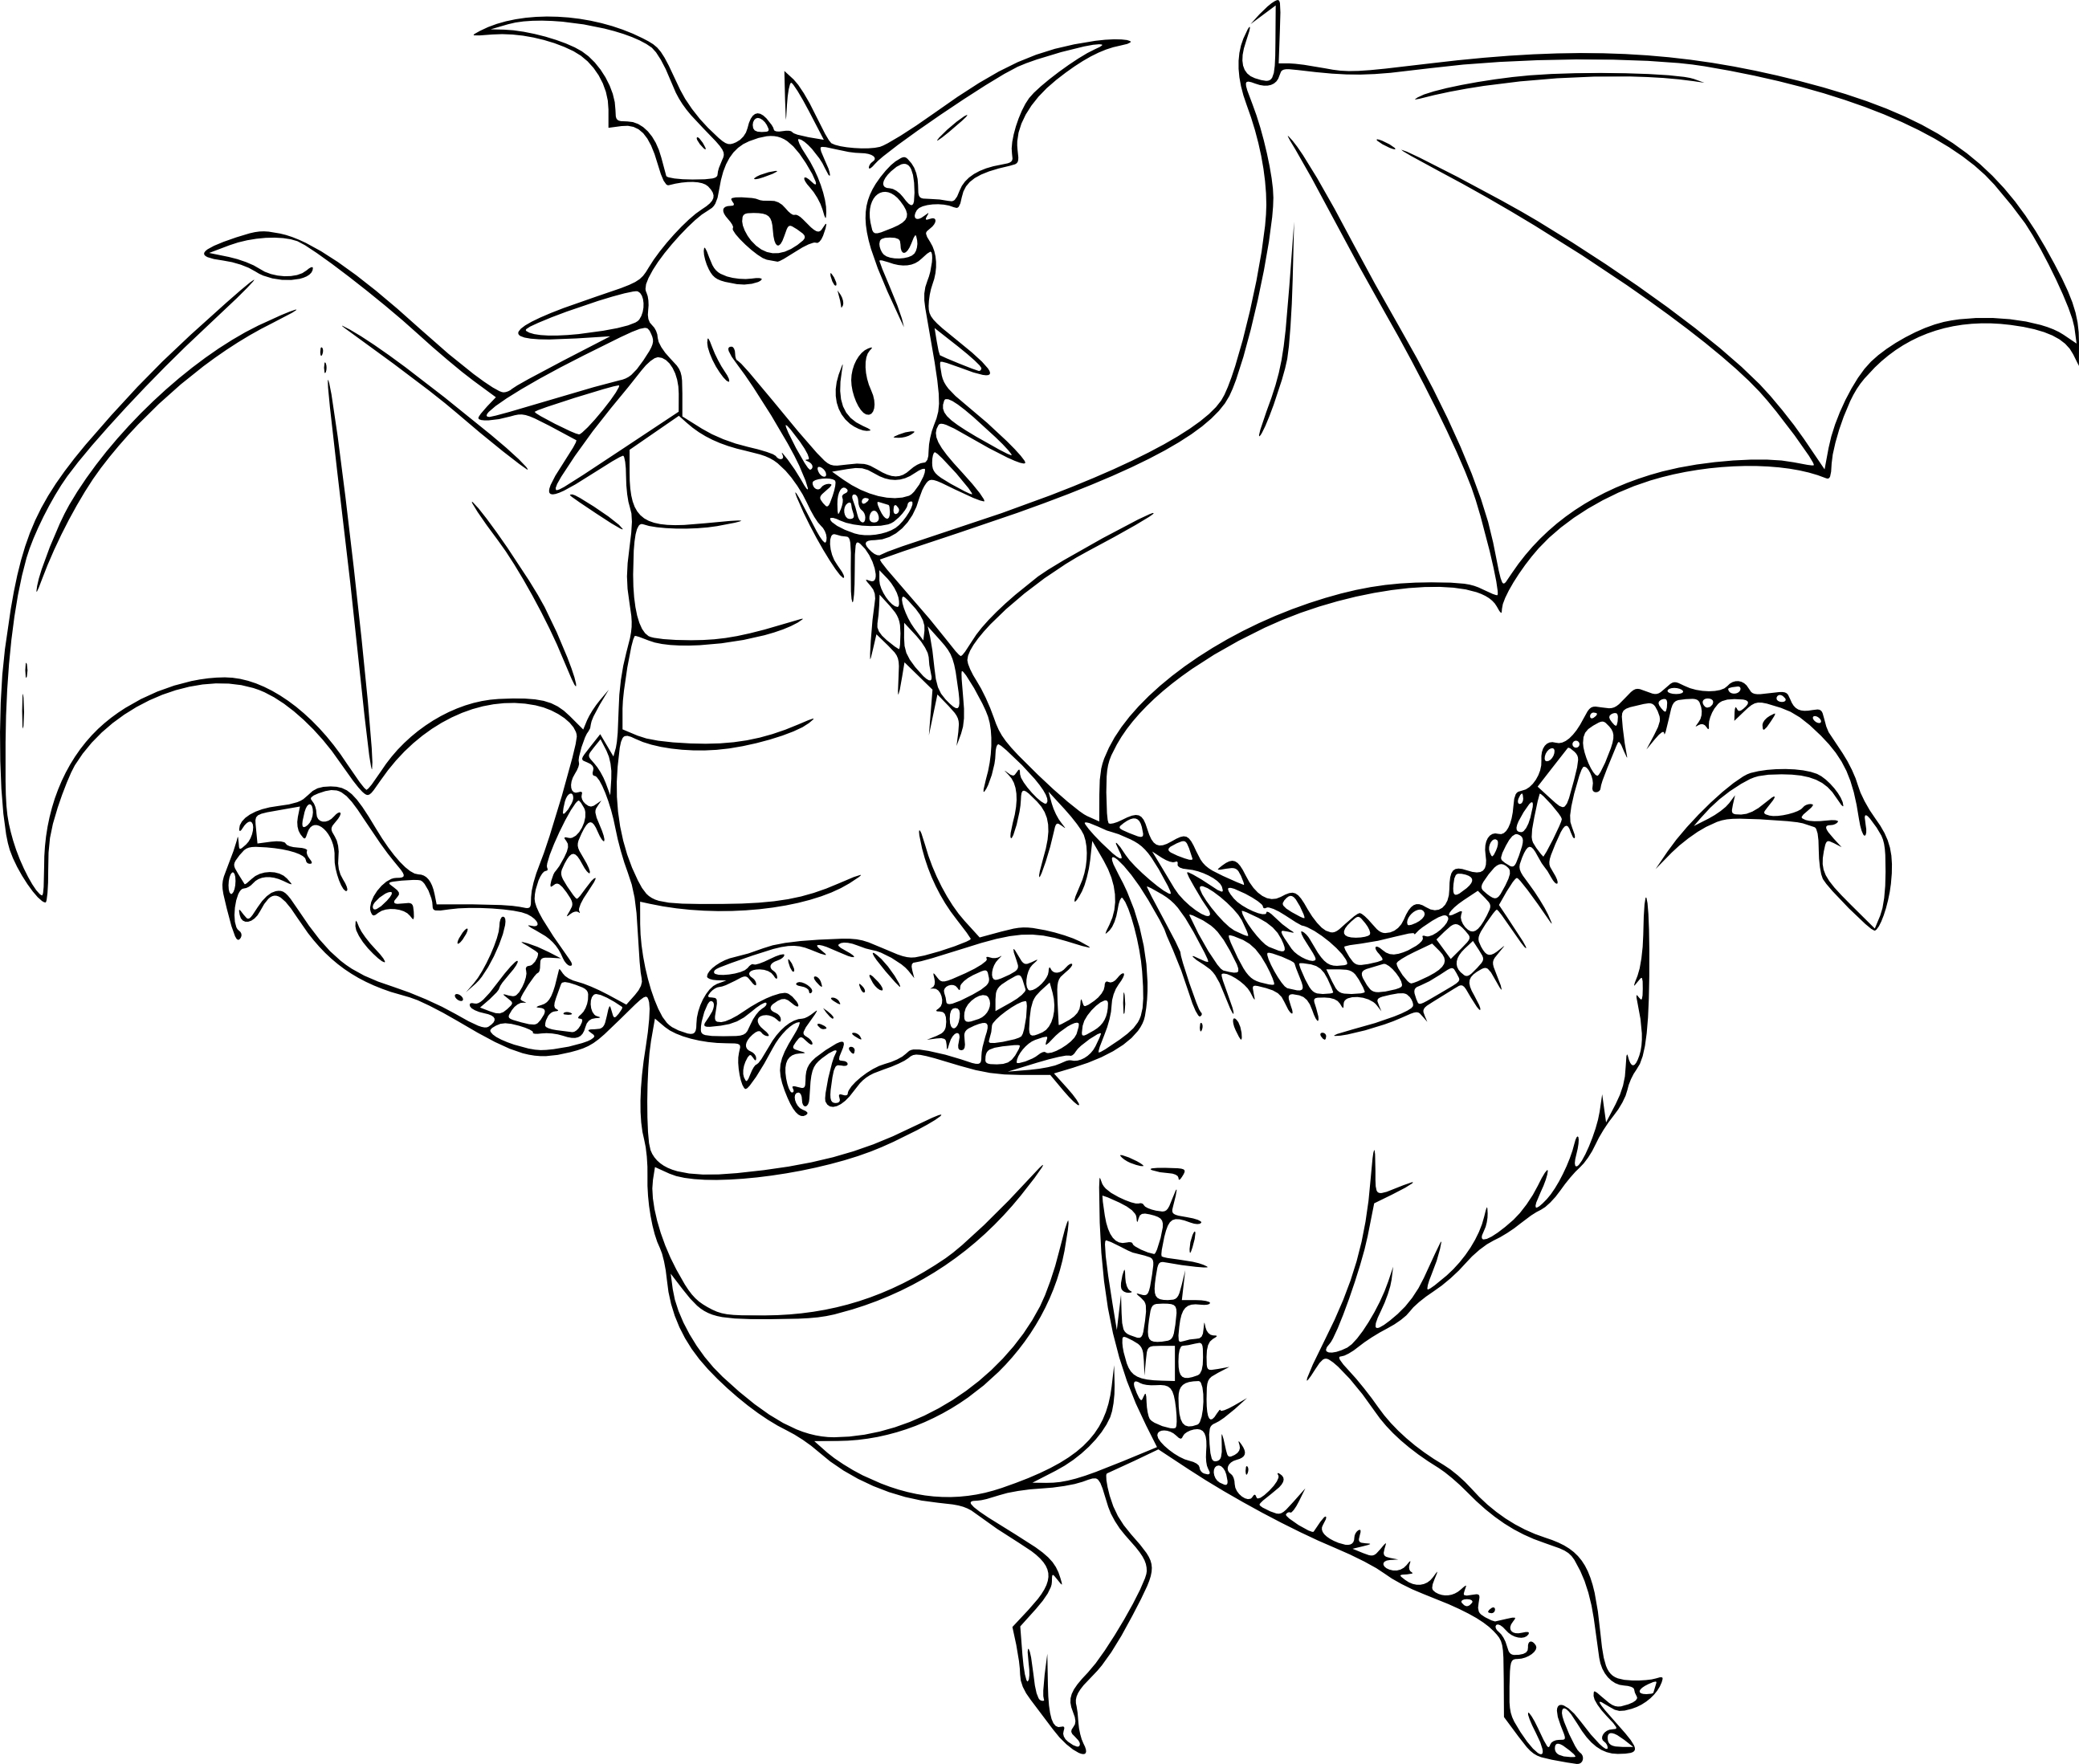 Coloriage dragon shrek imprimer et colorier - Coloriages de dragons ...